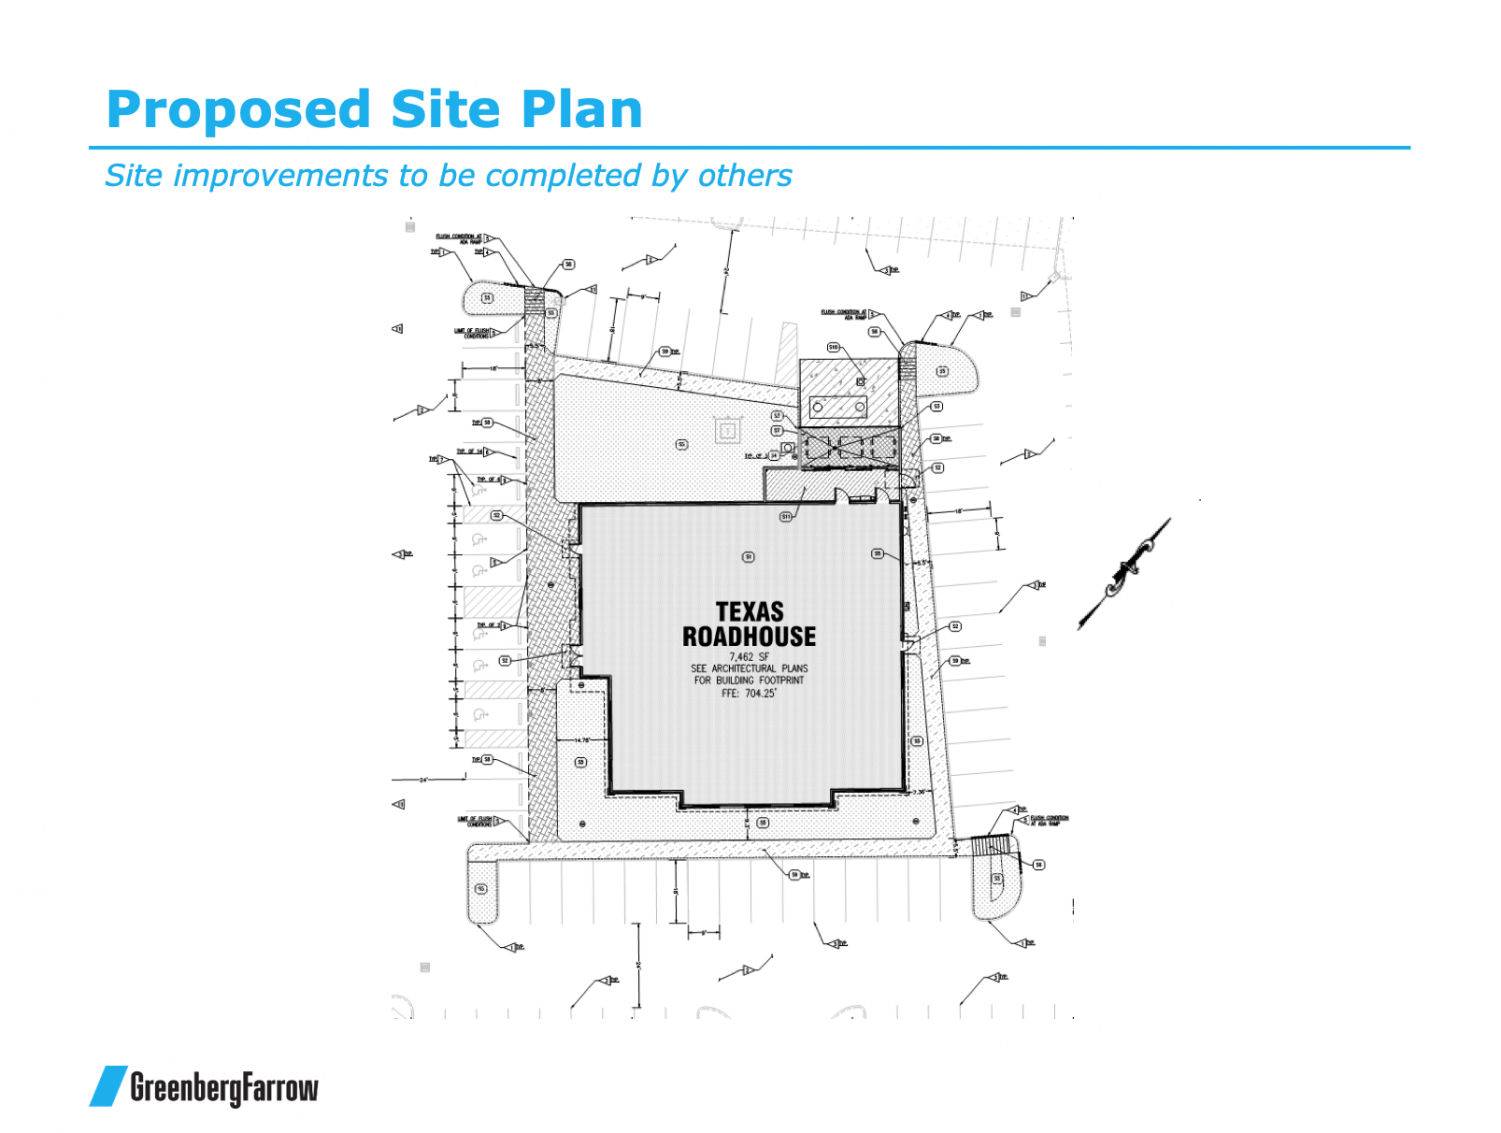 The proposed site plan for Texas Roadhouse submitted to the City of Zanesville.